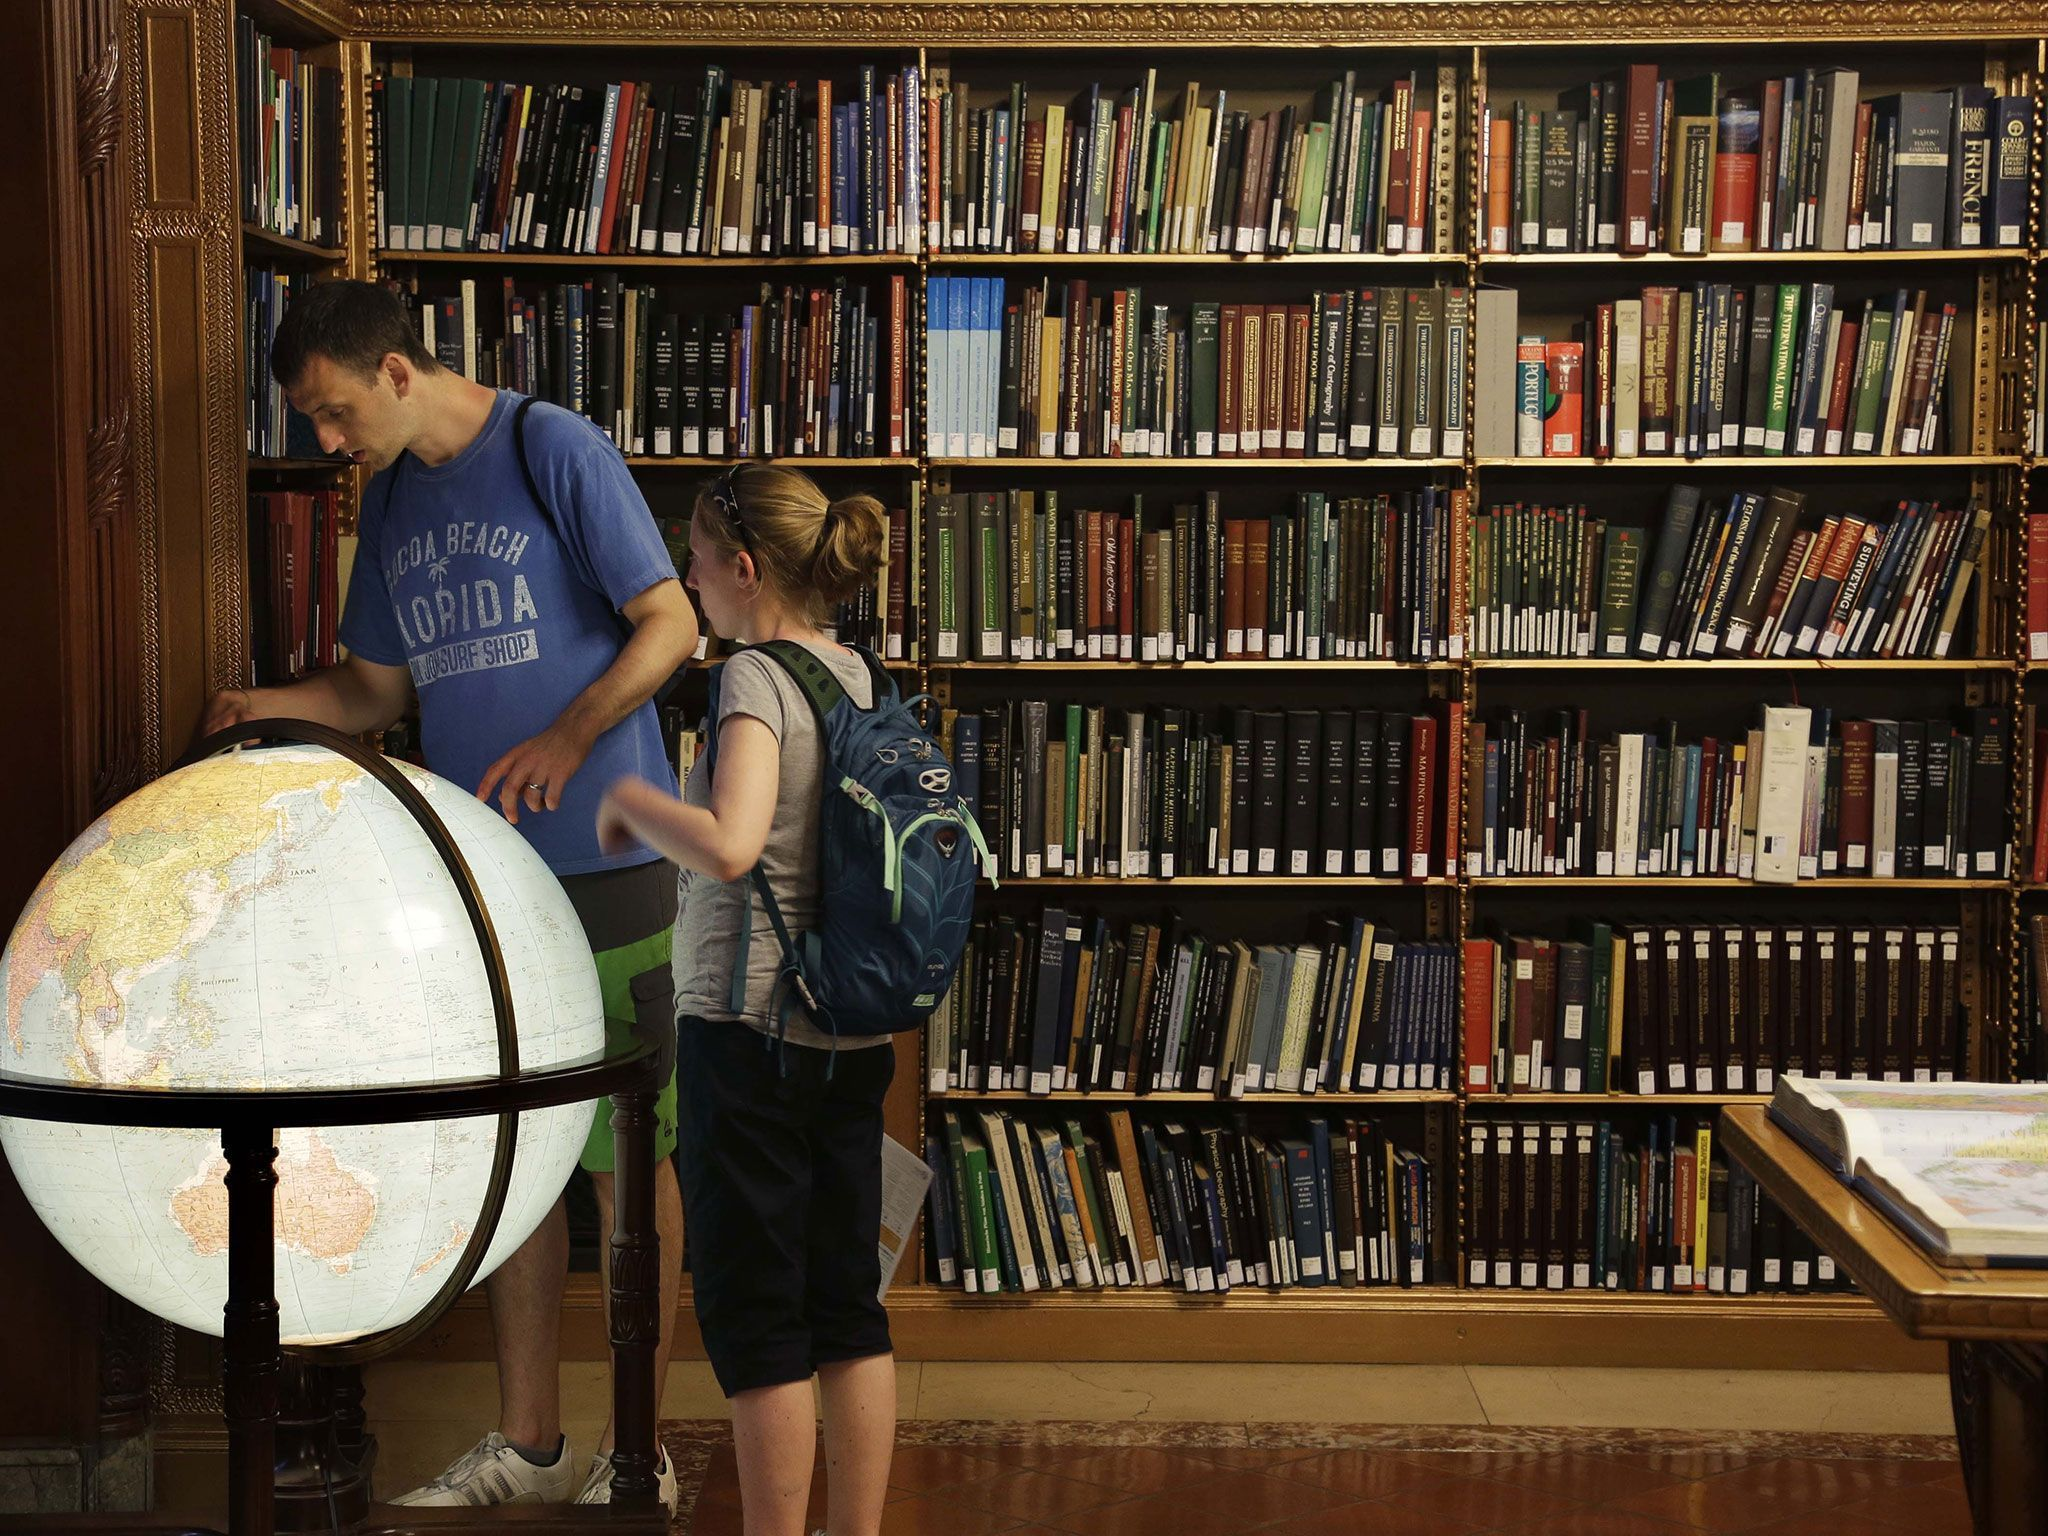 The library system received a $380,000 grant from the Knight Foundation to help with the extensive project.